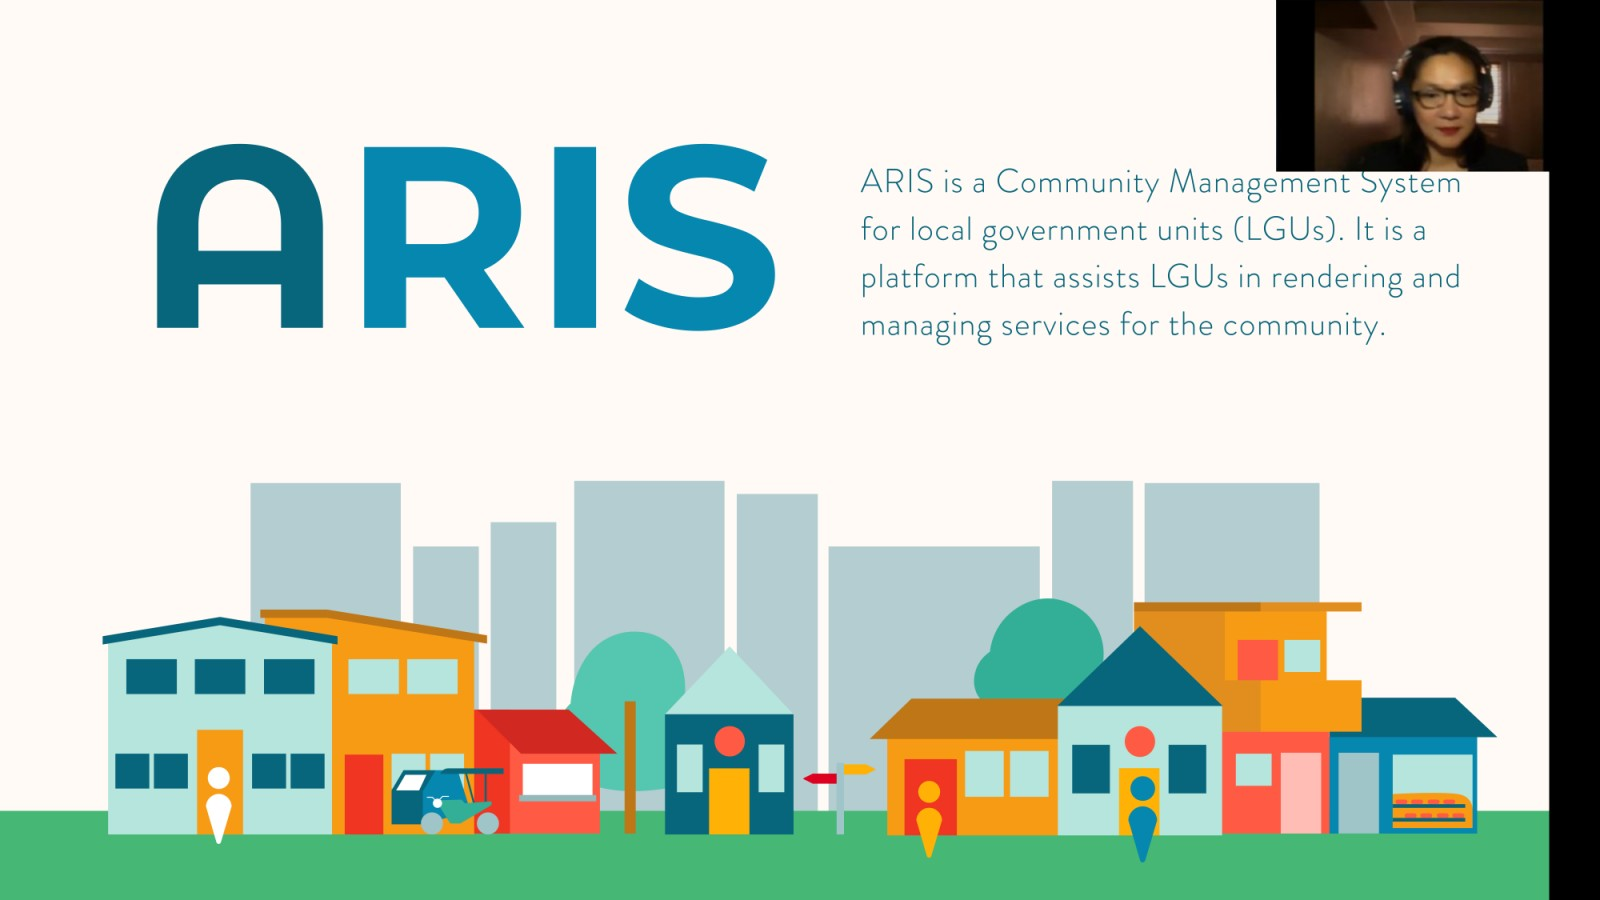 Allcard hosts a successful webinar on ARIS, a community management system for local government units